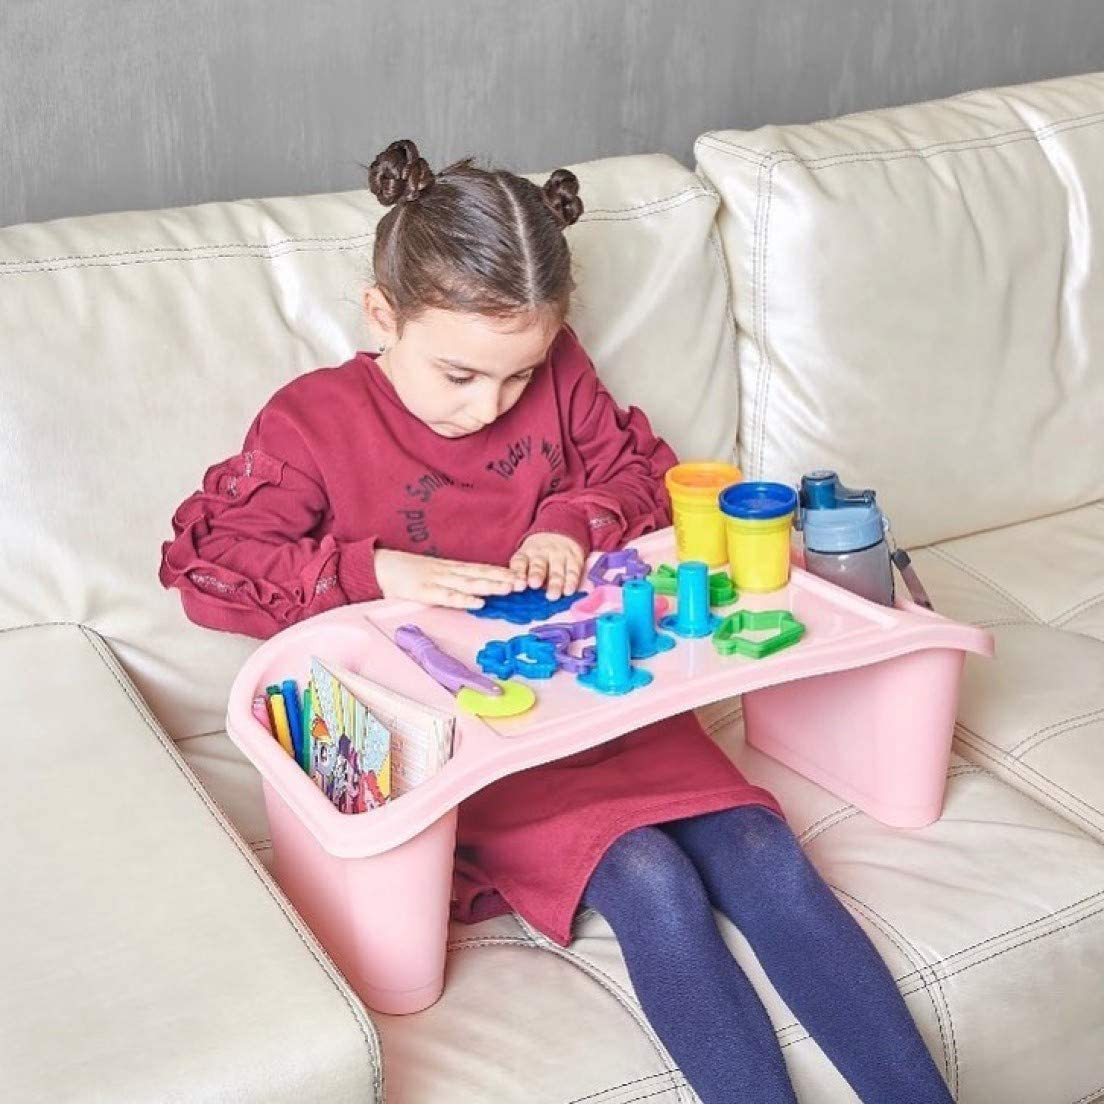 Portable Children Activity Table Large Student Desk Indoor /& Outdoor Multifunctional Activity Tray for Kids Toddlers Boys Girls Blue Multi Purpose Travel Tray Bed Tray Sofa Table